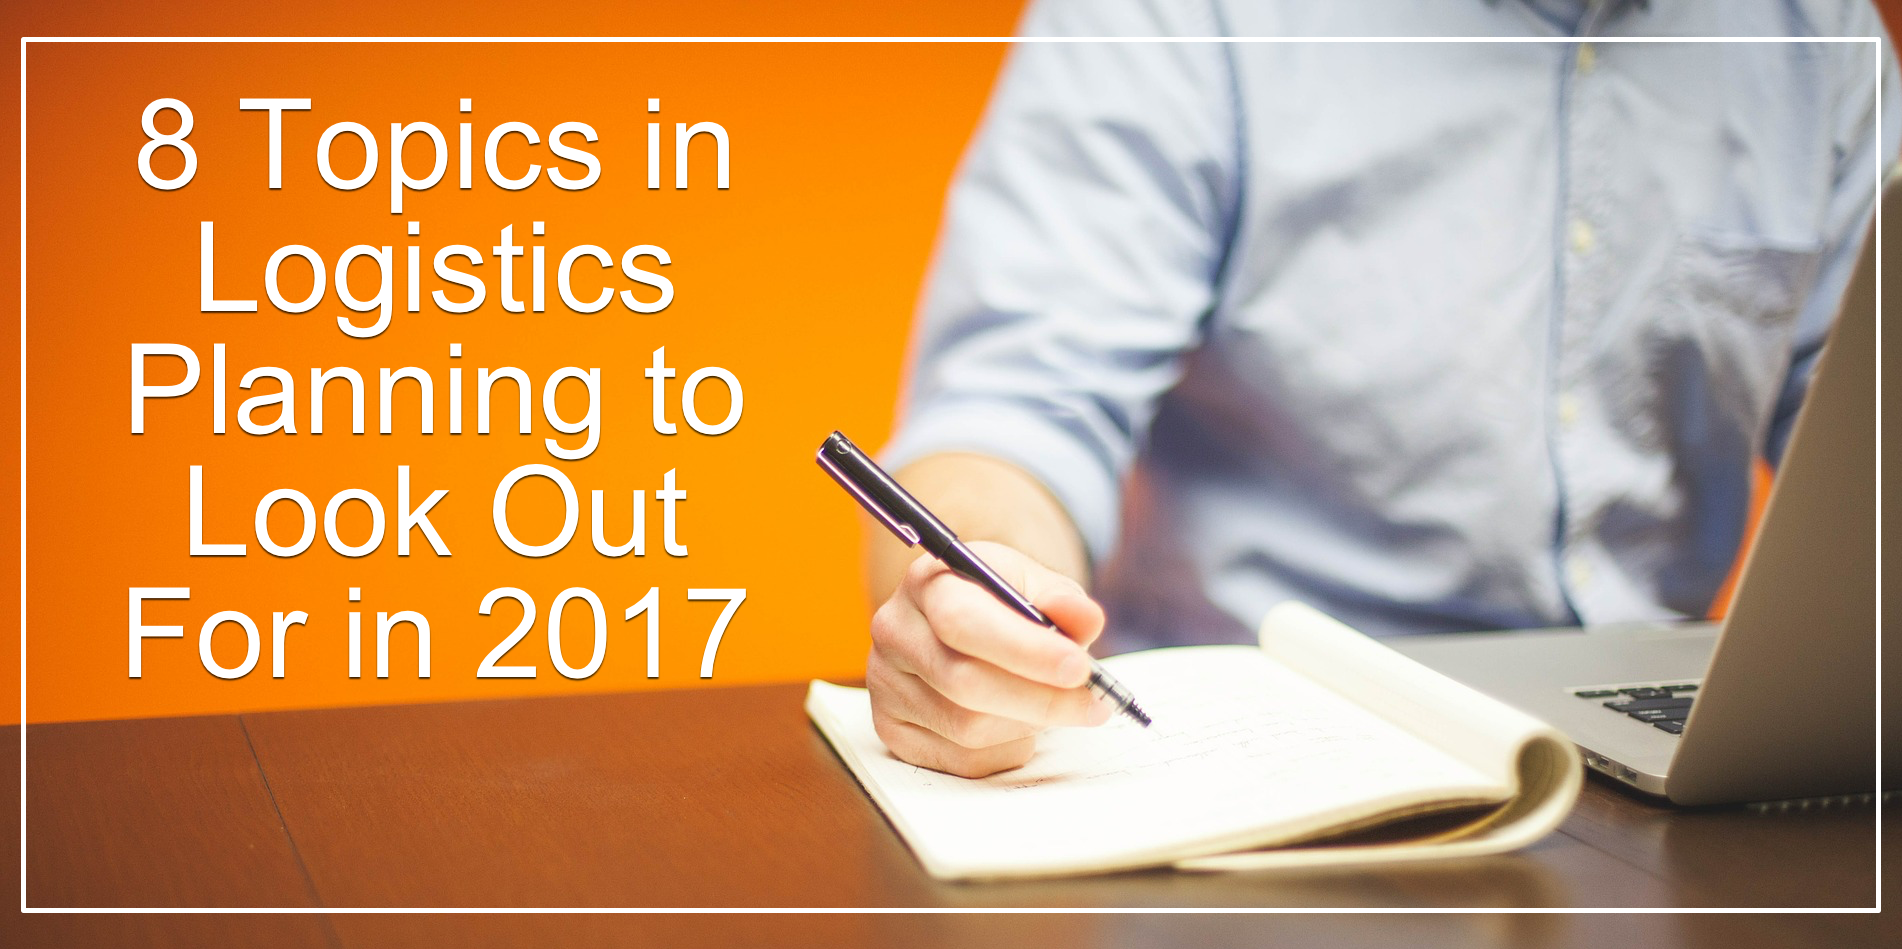 8 Topics in Logistics Planning to Look Out For in 2017